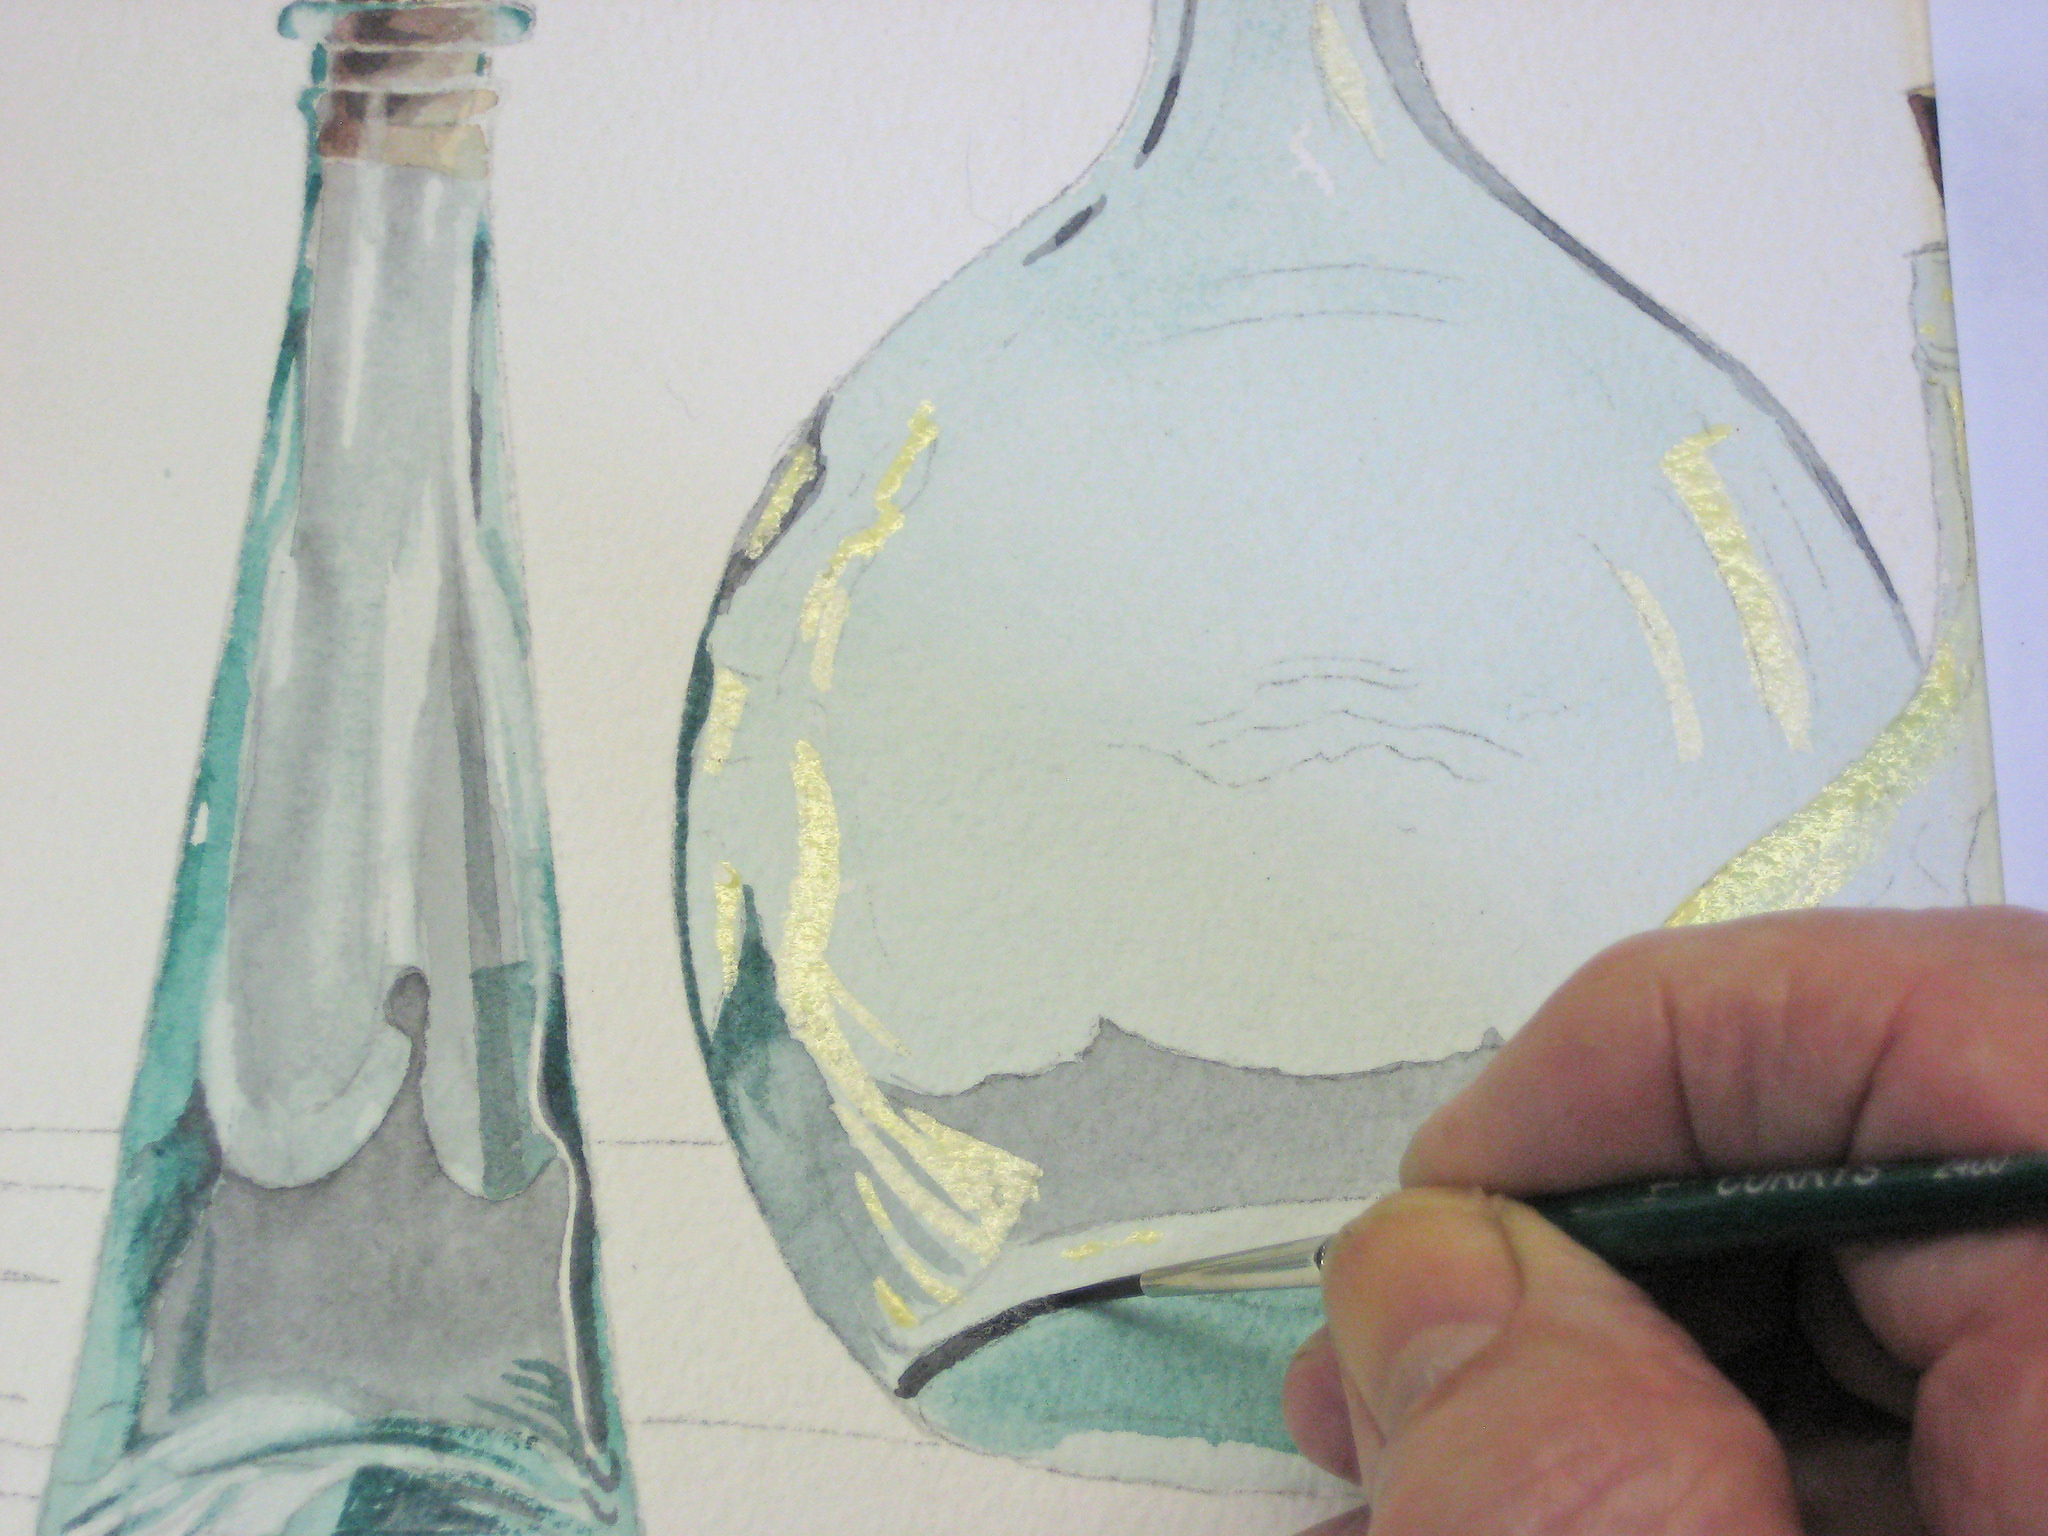 Green Bottles - A Watercolor Demo